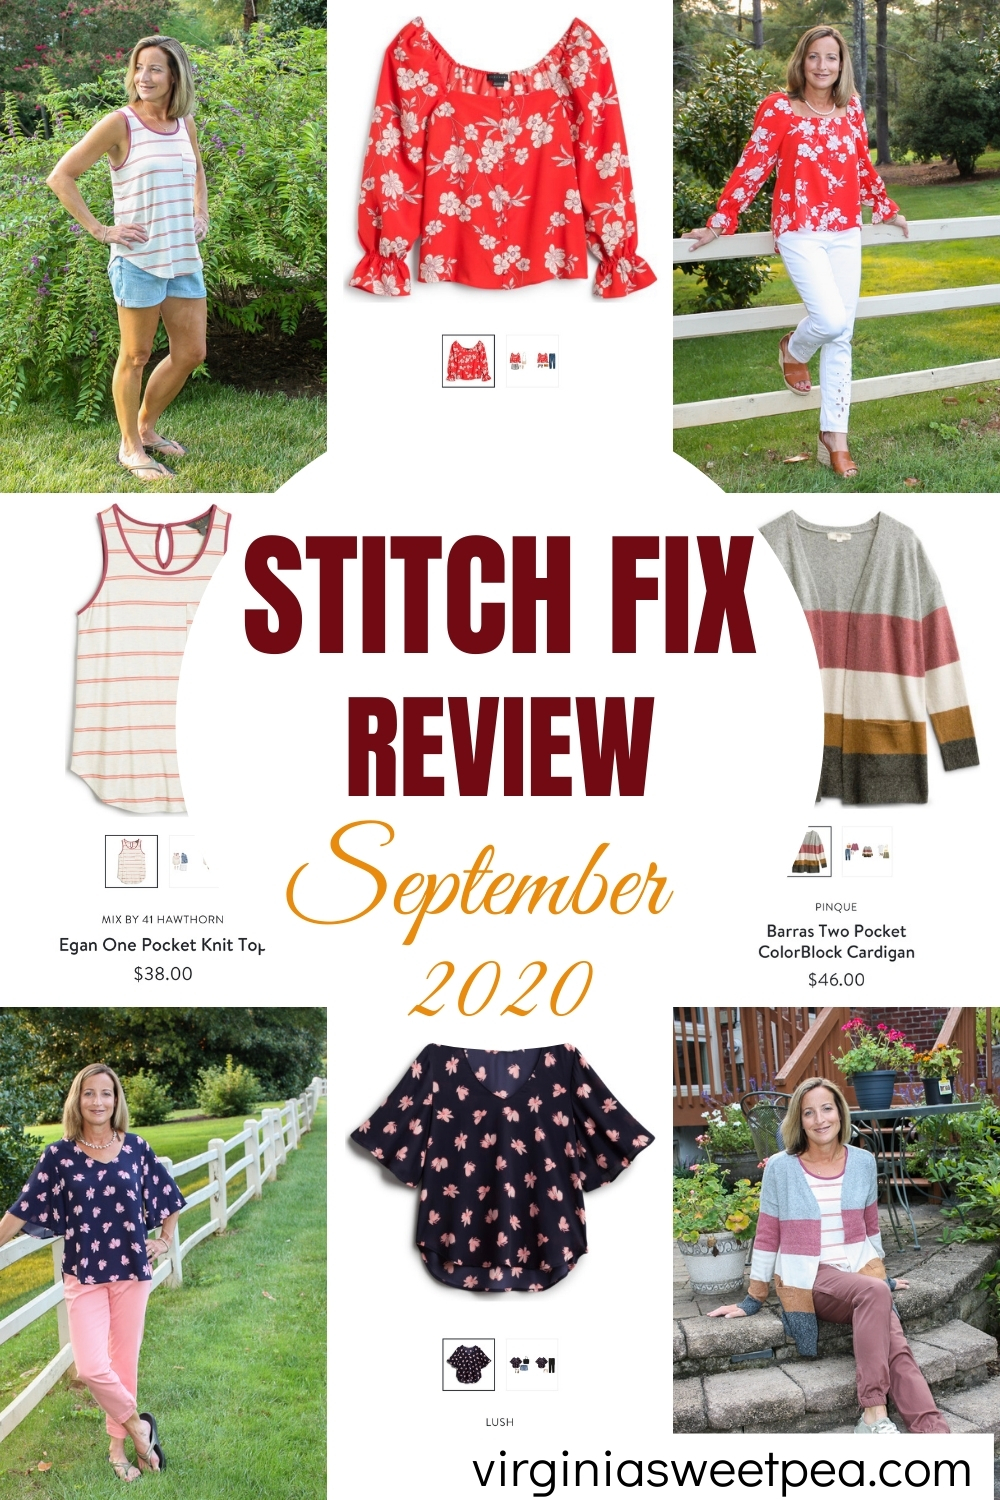 Stitch Fix Review for September 2020 - See the styles picked for me to try for September.  These pieces are great for transitioning from summer to fall.  #stitchfix #stitchfixreview #stitchfixstyle via @spaula